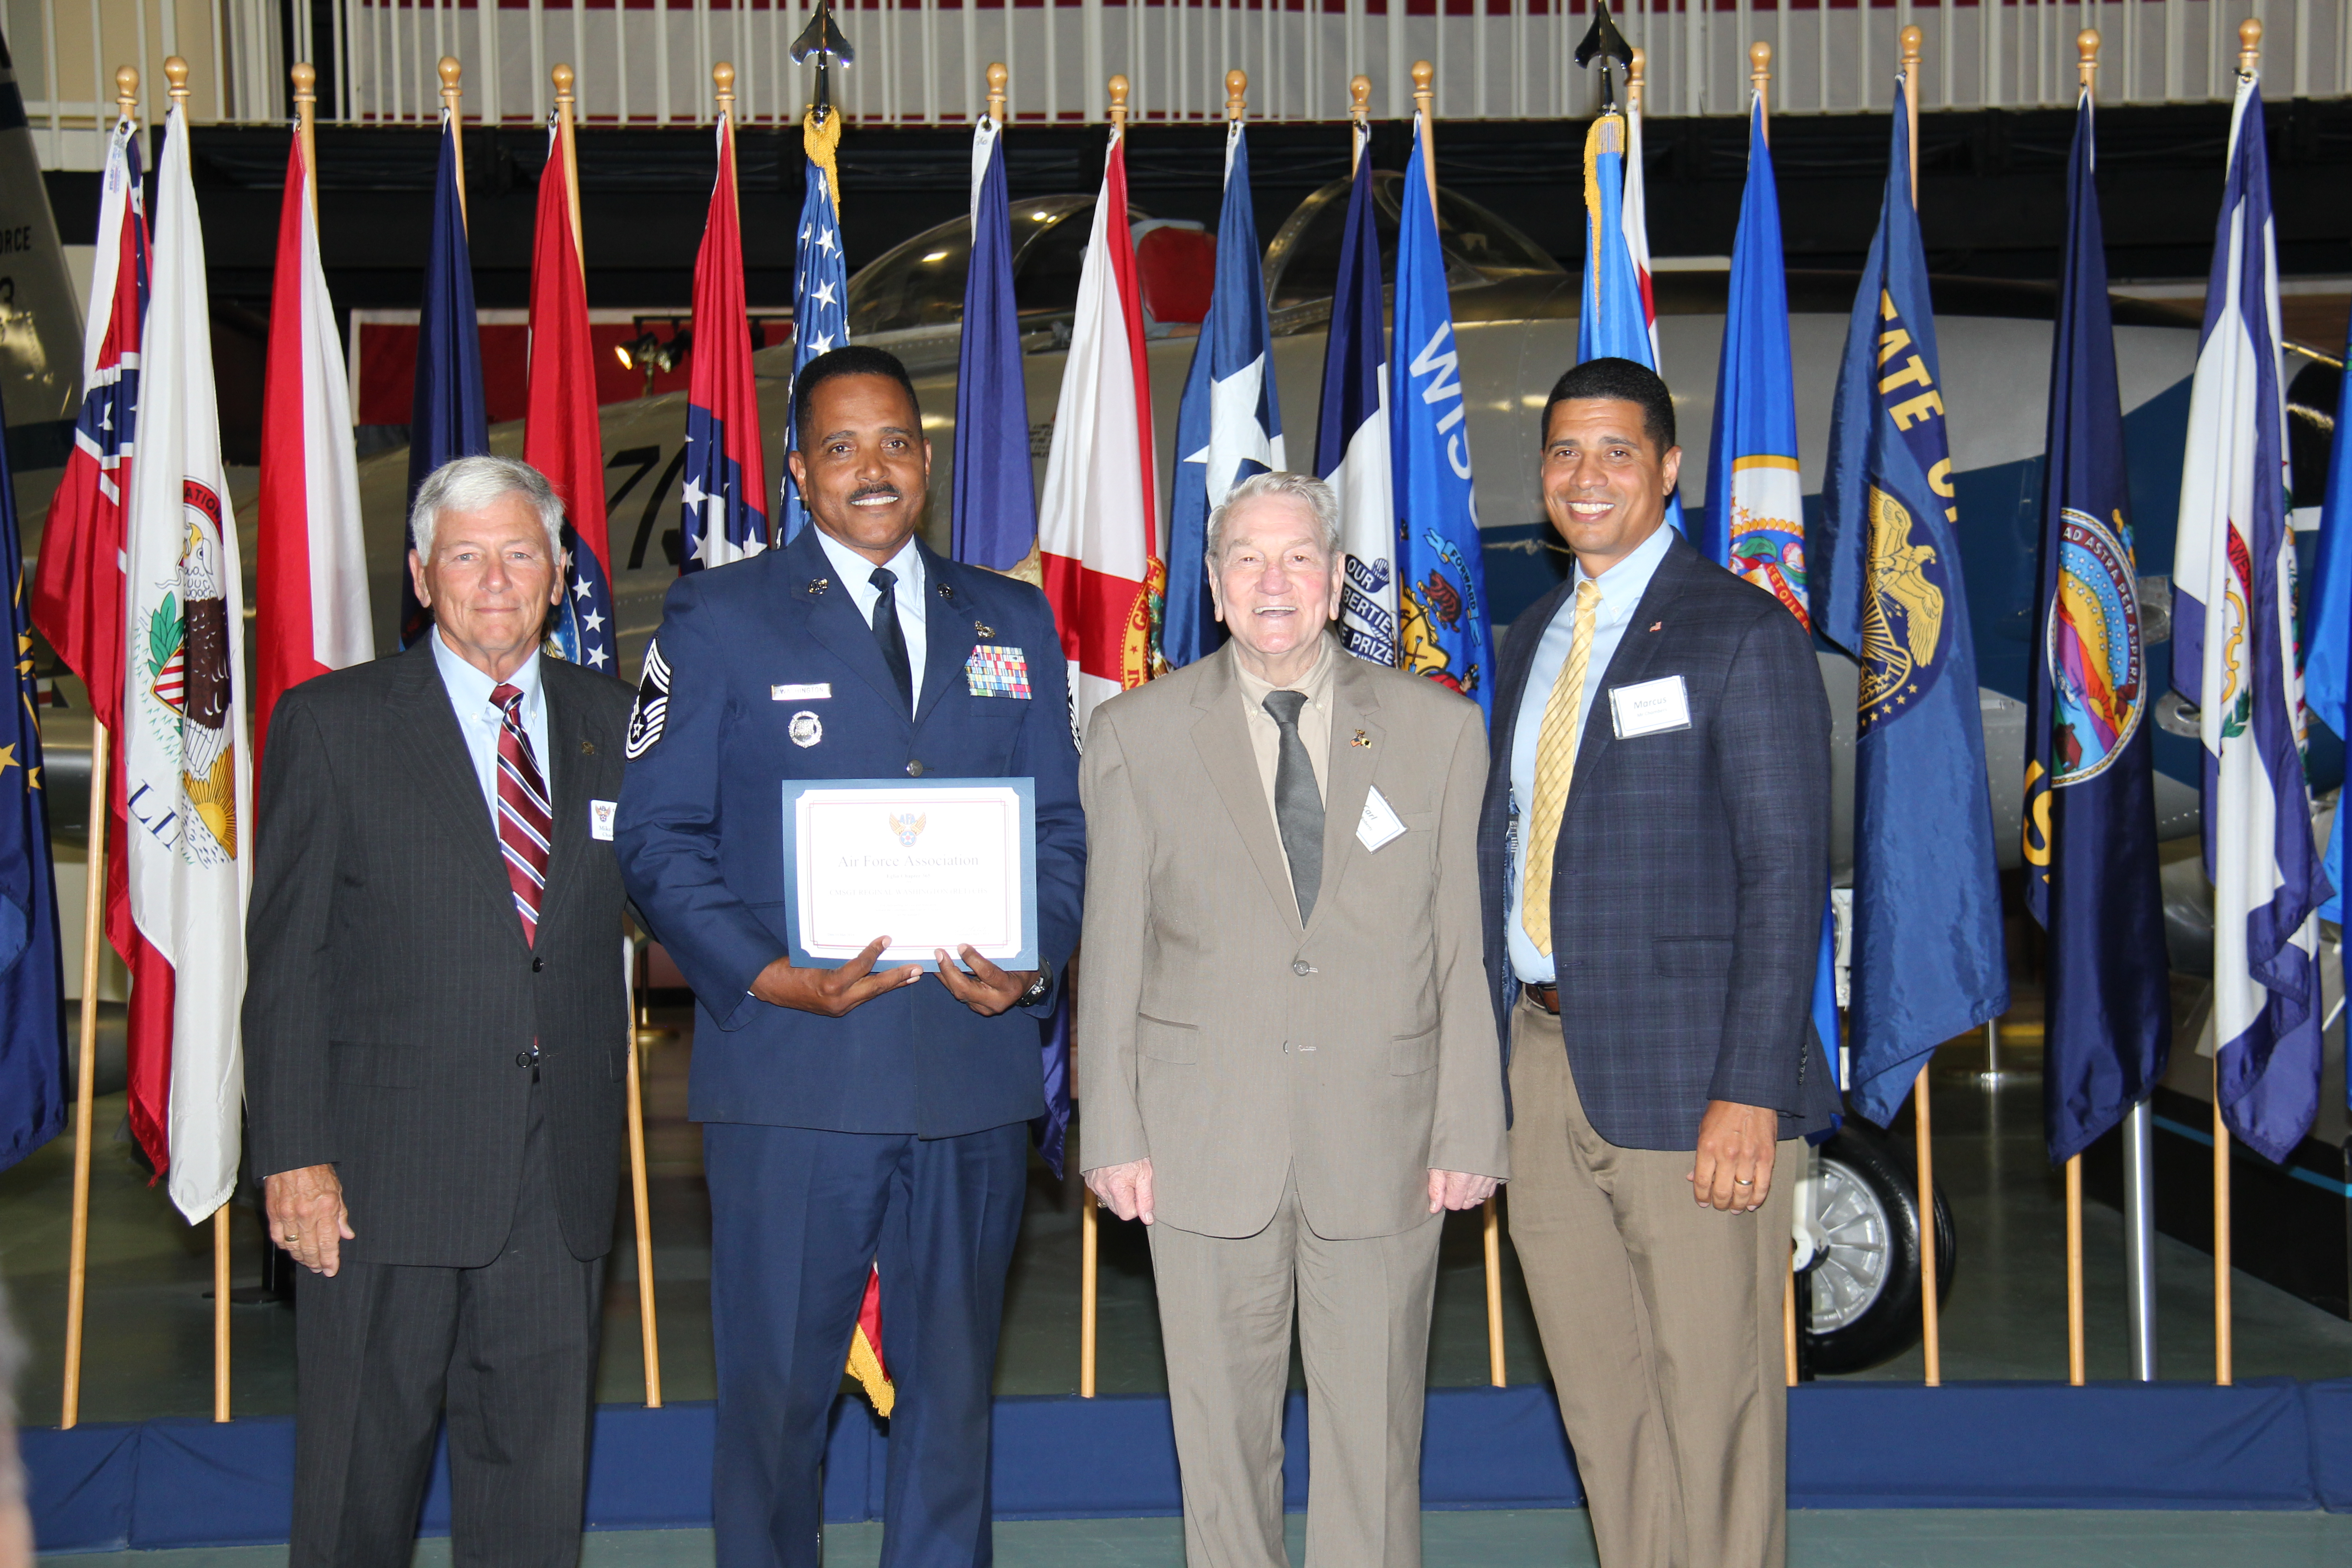 CMSgt Reginald Washington, Choctawhatchee High School, Aerospace Science Instructor